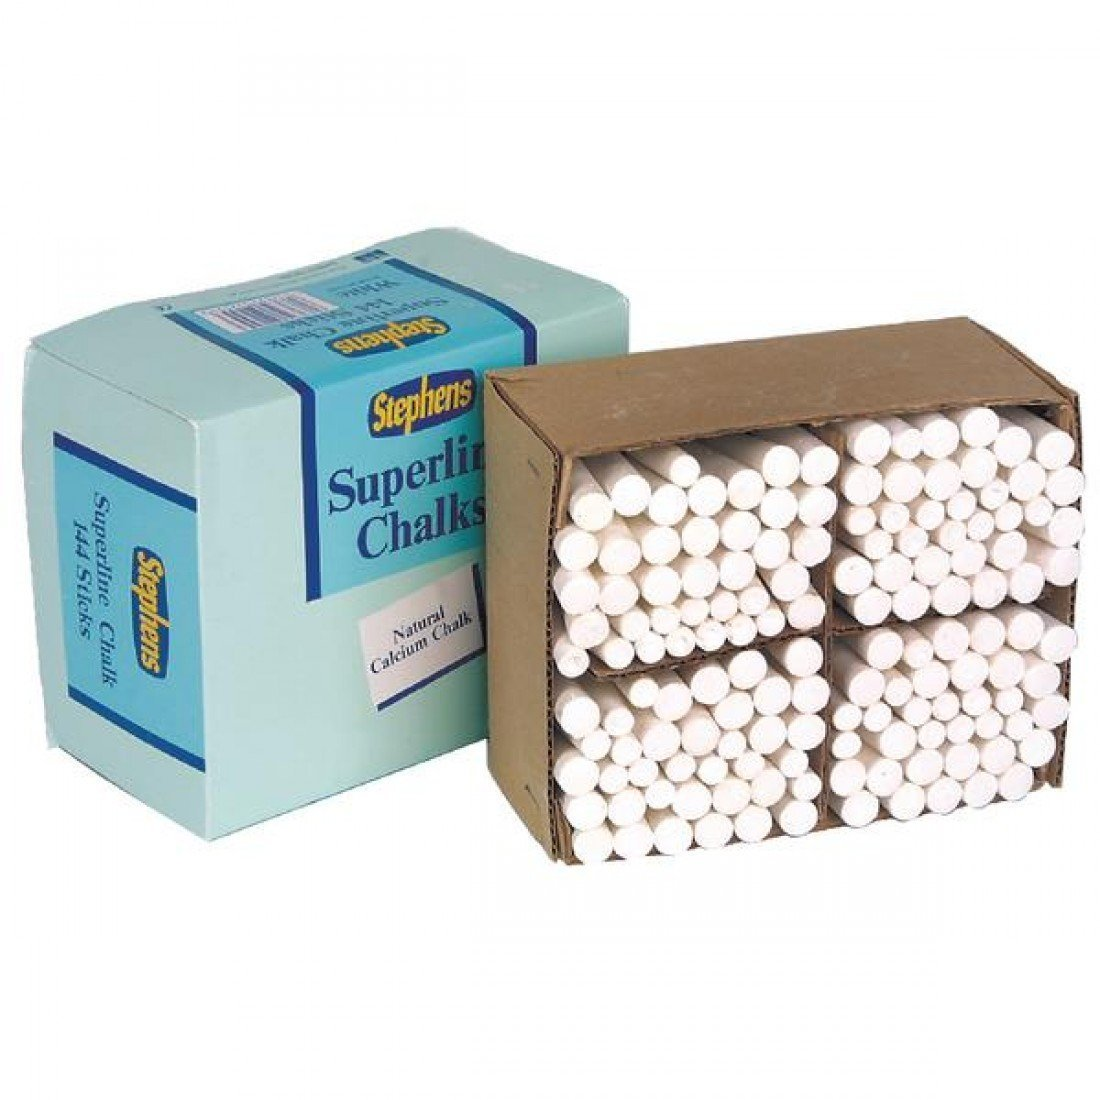 Stephens Superline RS522553 white chalk sticks, BOX of 144 CEOND505116